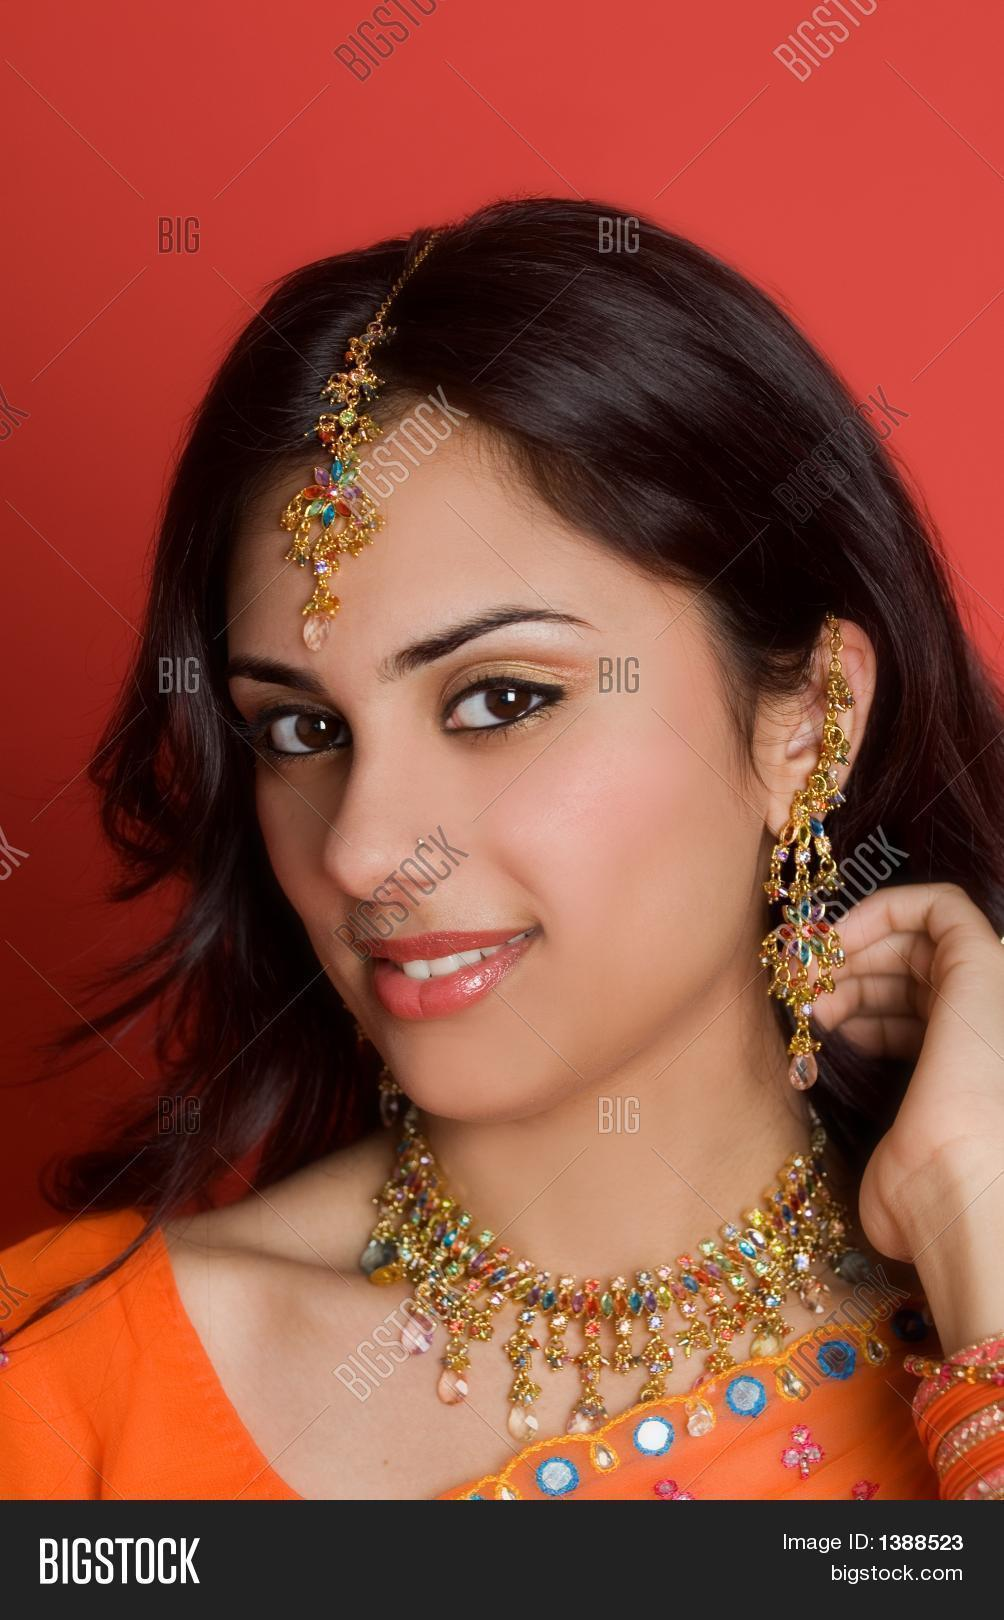 clearbrook hindu single women 5 reasons why you should not date indian girls have you ever seen a skinny indian woman over the age dating an indian girl will be a constant roller.